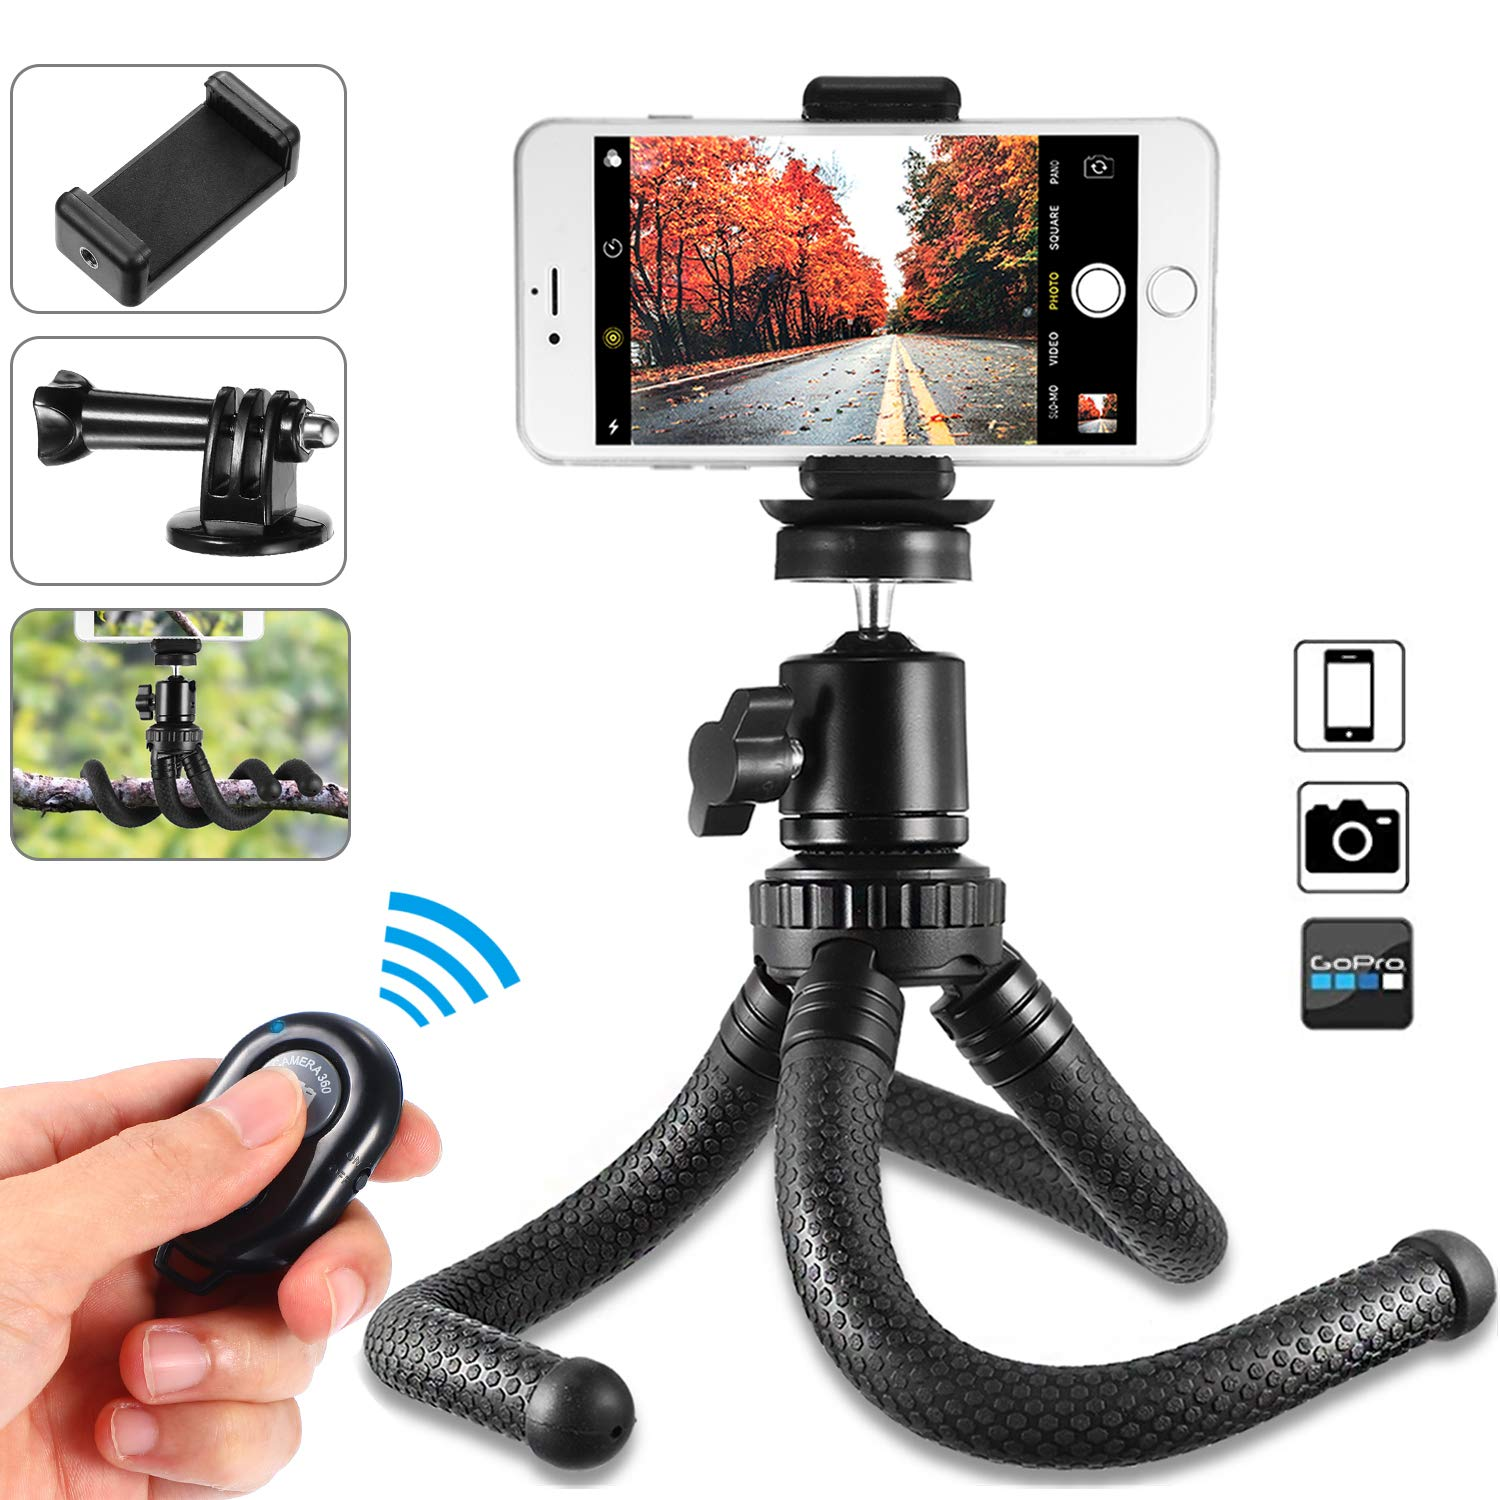 Phone Tripod, Flexible Cell Phone Tripod Stand Holder with Wireless Remote Shutter & Universal Clip 360°Rotating Mini Tripod Stand for iPhone Xs Max, Android, Samsung, Camera, Sports Camera GoPro by Shengsite